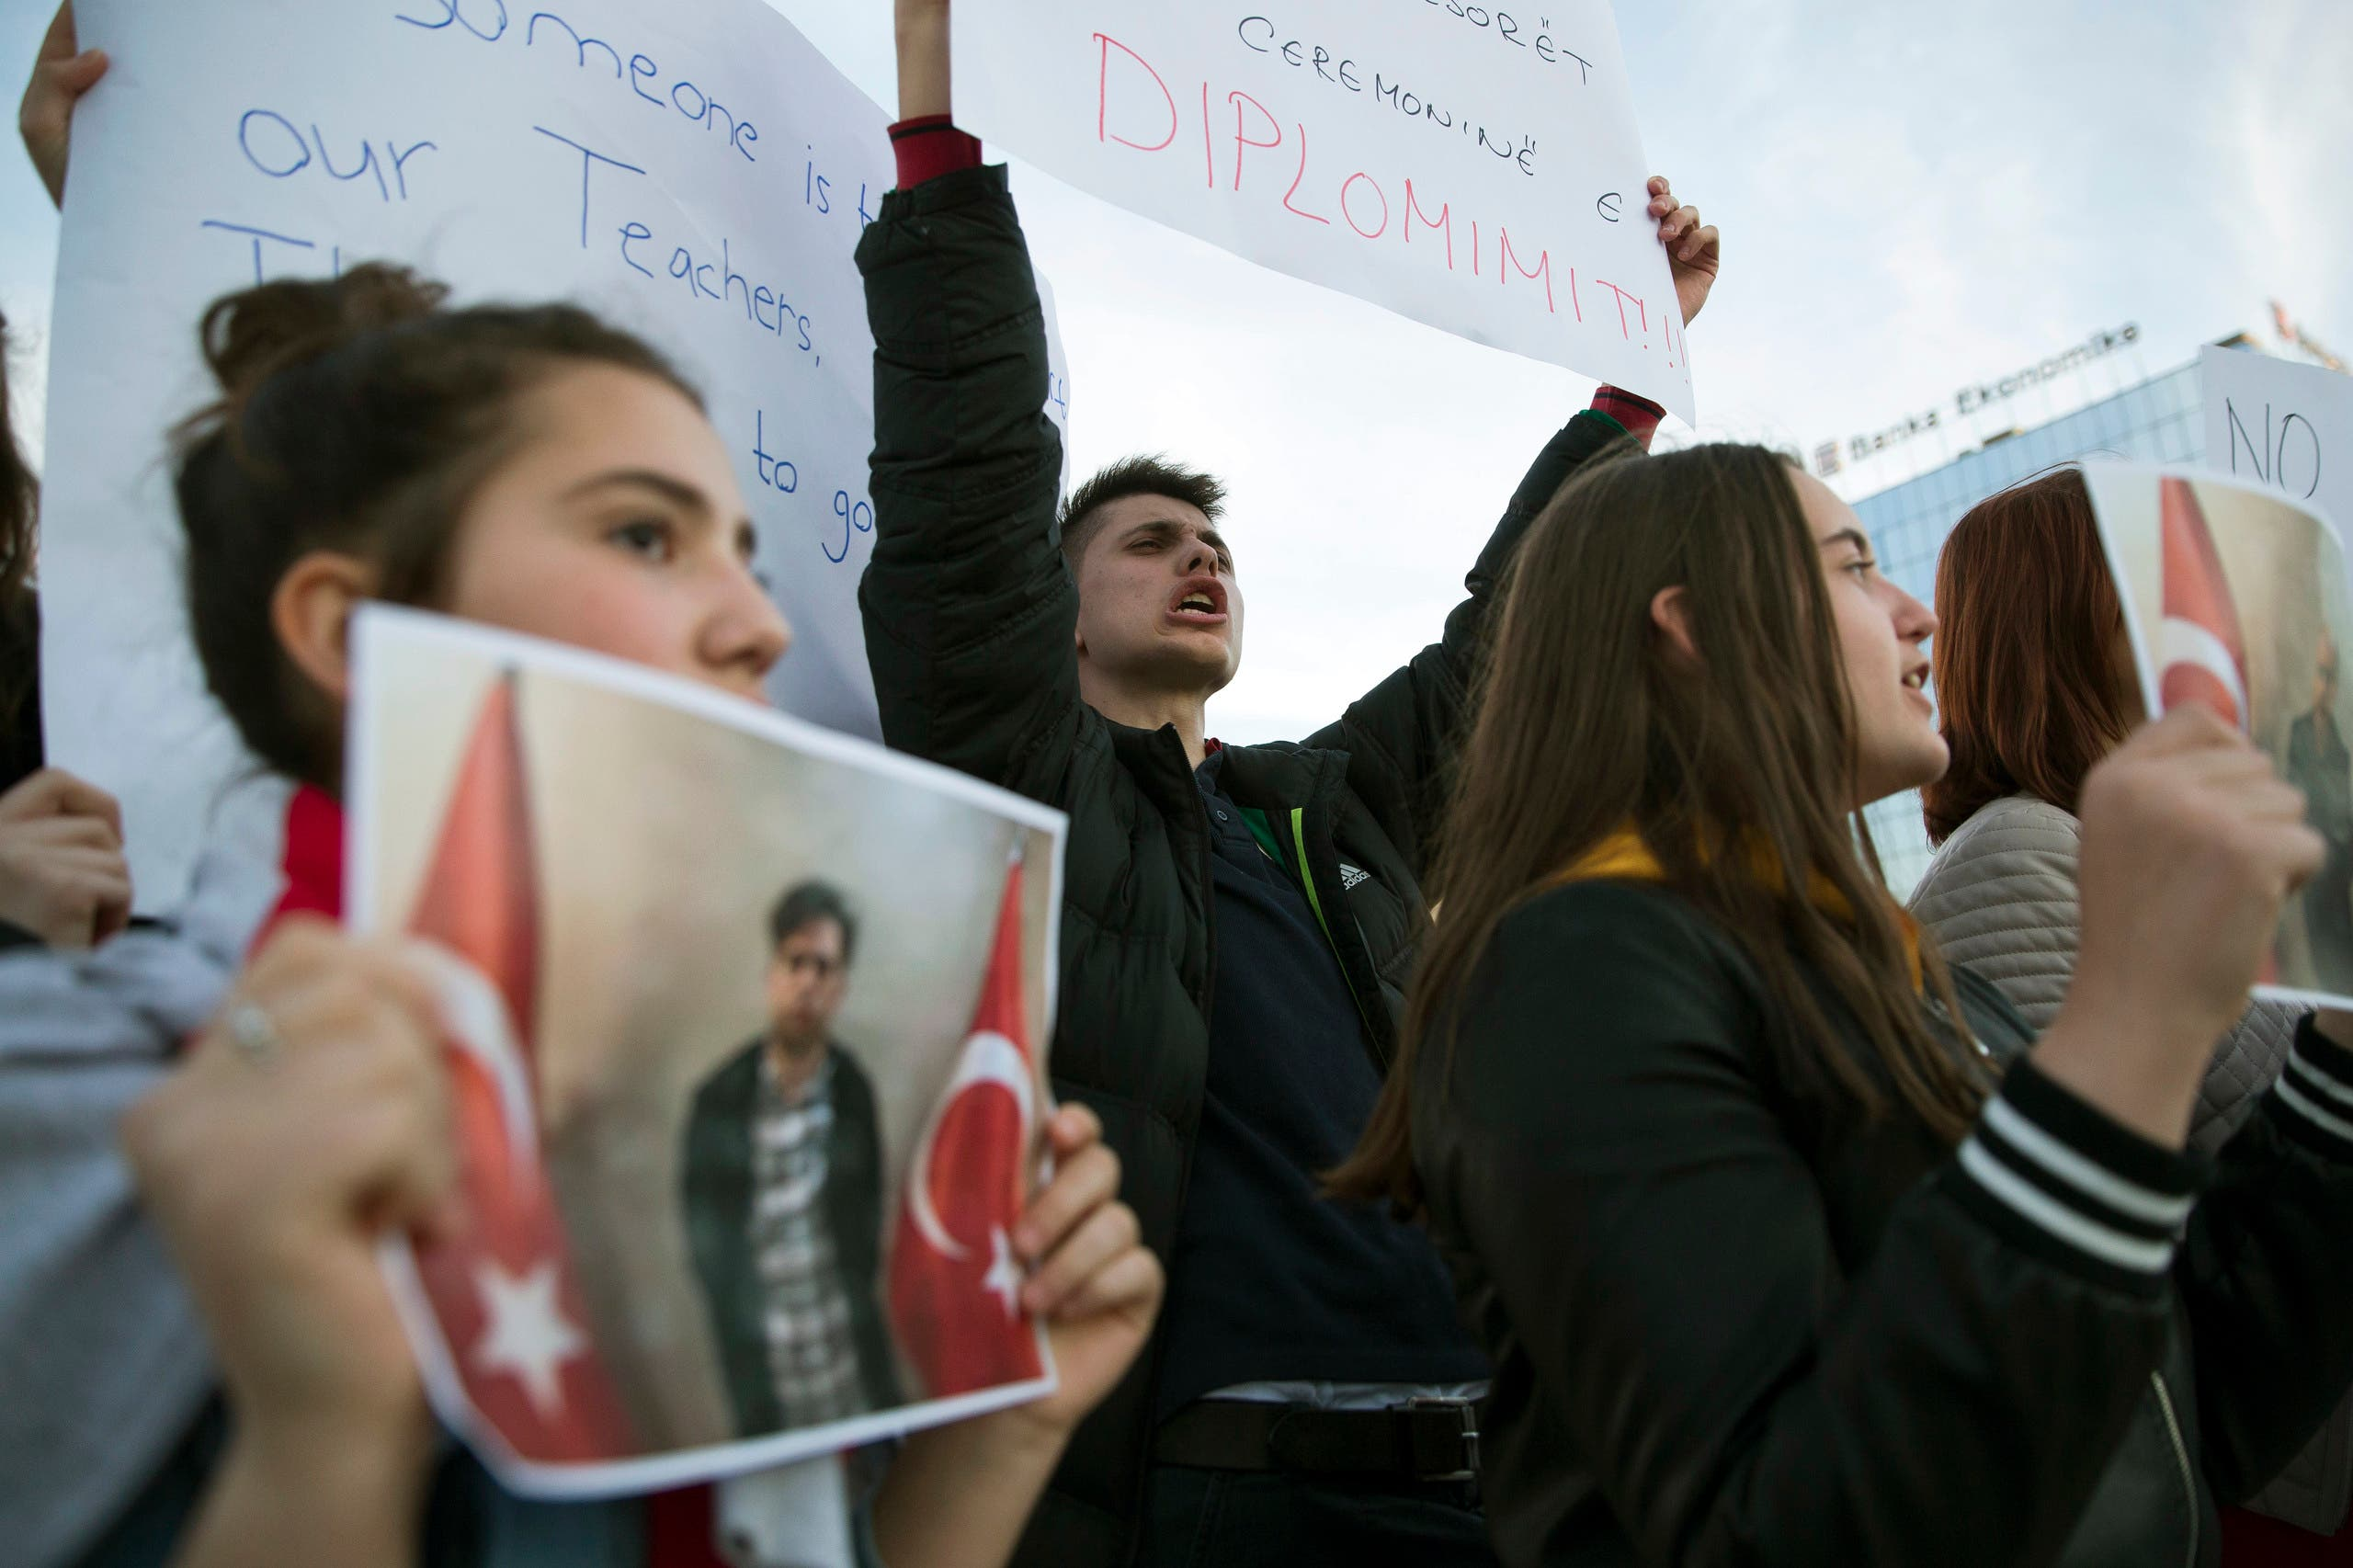 Students in Kosovo protest the arrest and deportation of their teachers, working with a group of schools said to be owned by Gulen, on March 29, 2018. (AP)